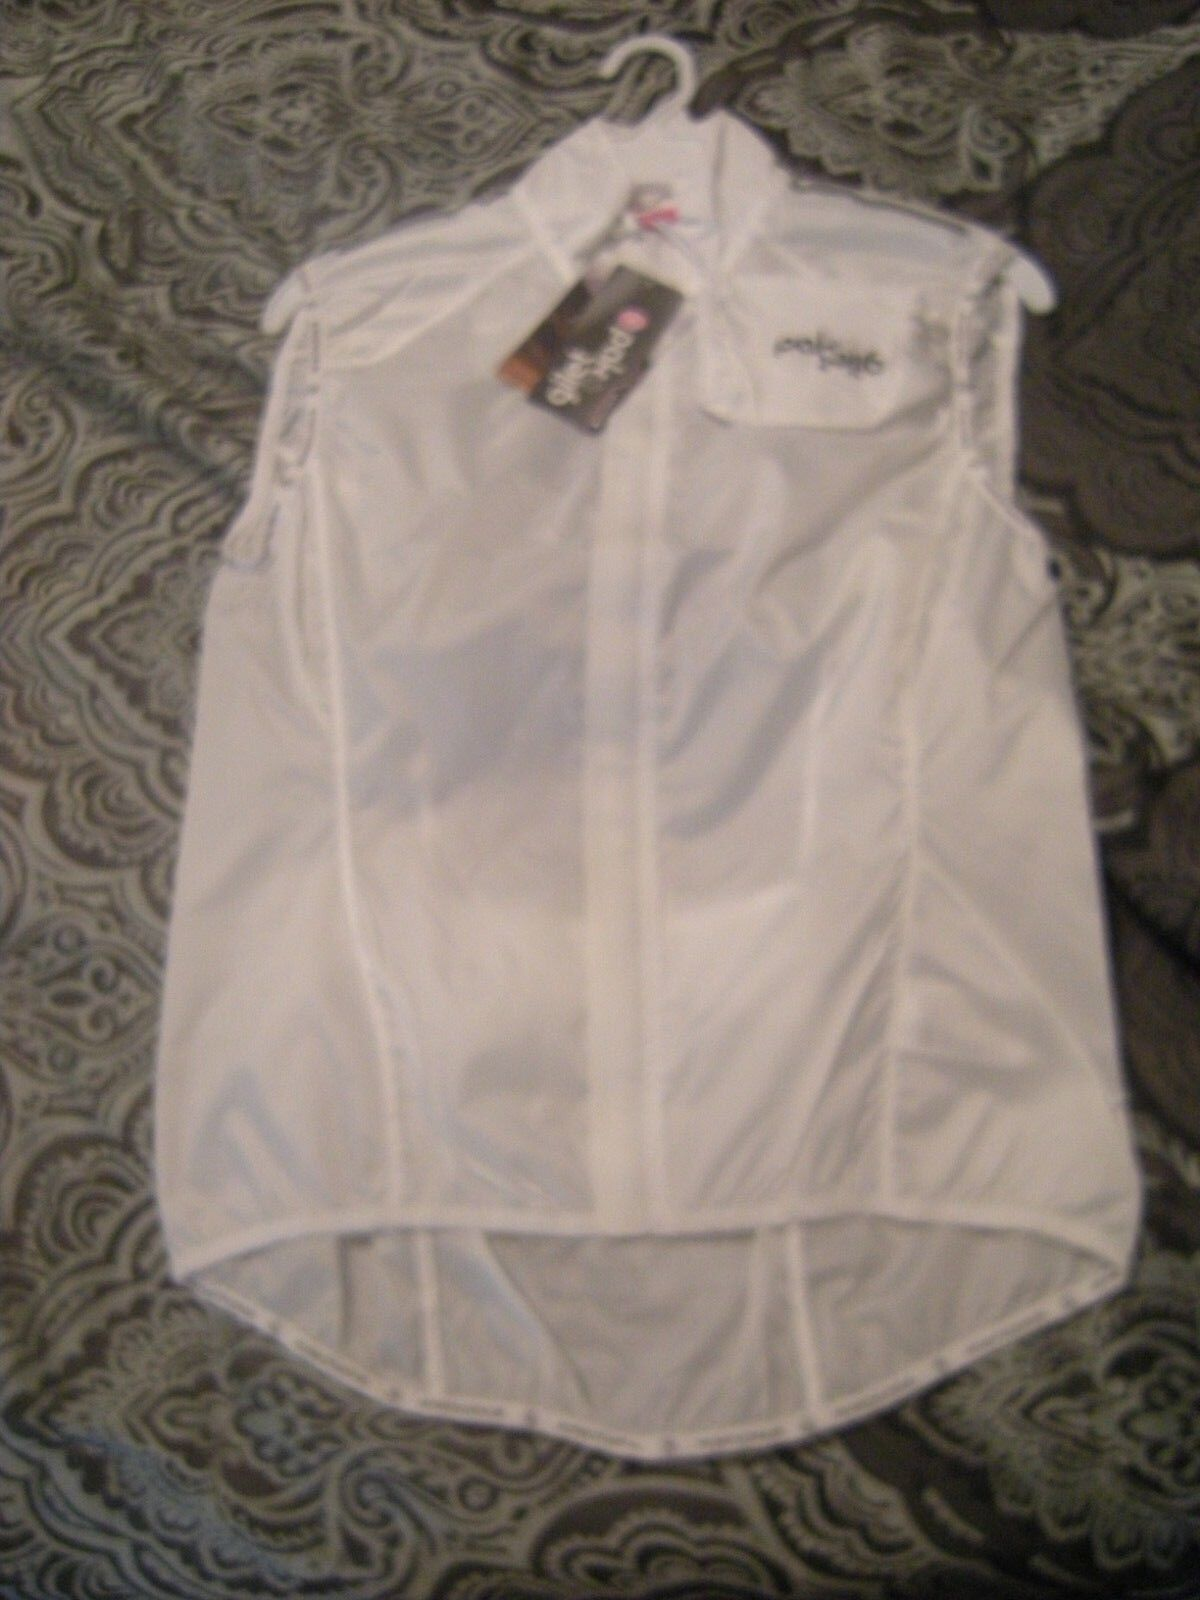 Brand New Womens White Endura Pakagilet Sport Wind Cycling Vest, Size XL